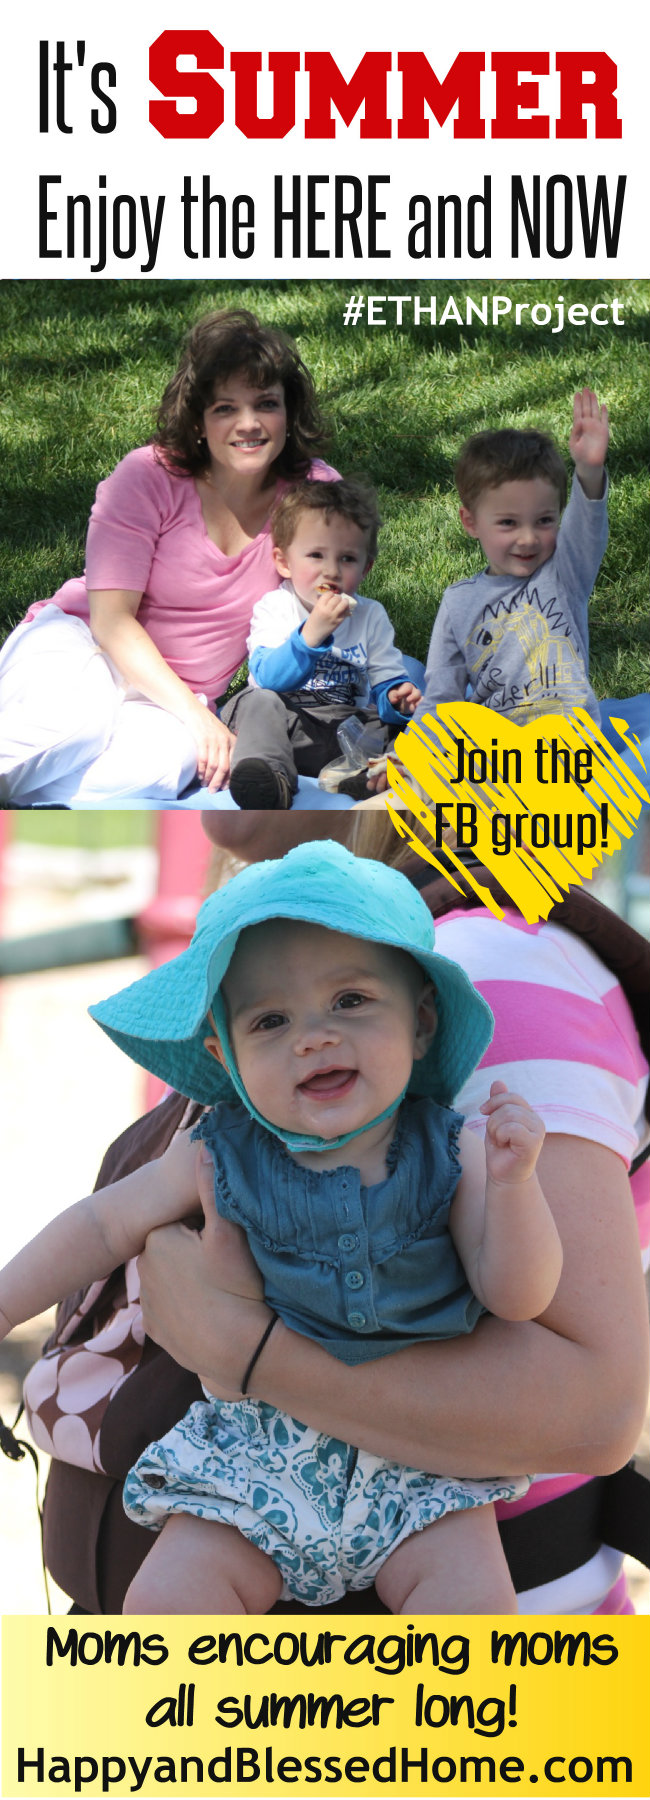 #ETHANProject Enjoy friendship this summer - encouraging moms to enjoy time with girlfriends with free planner and FB group at HappyandBlessedHome.com